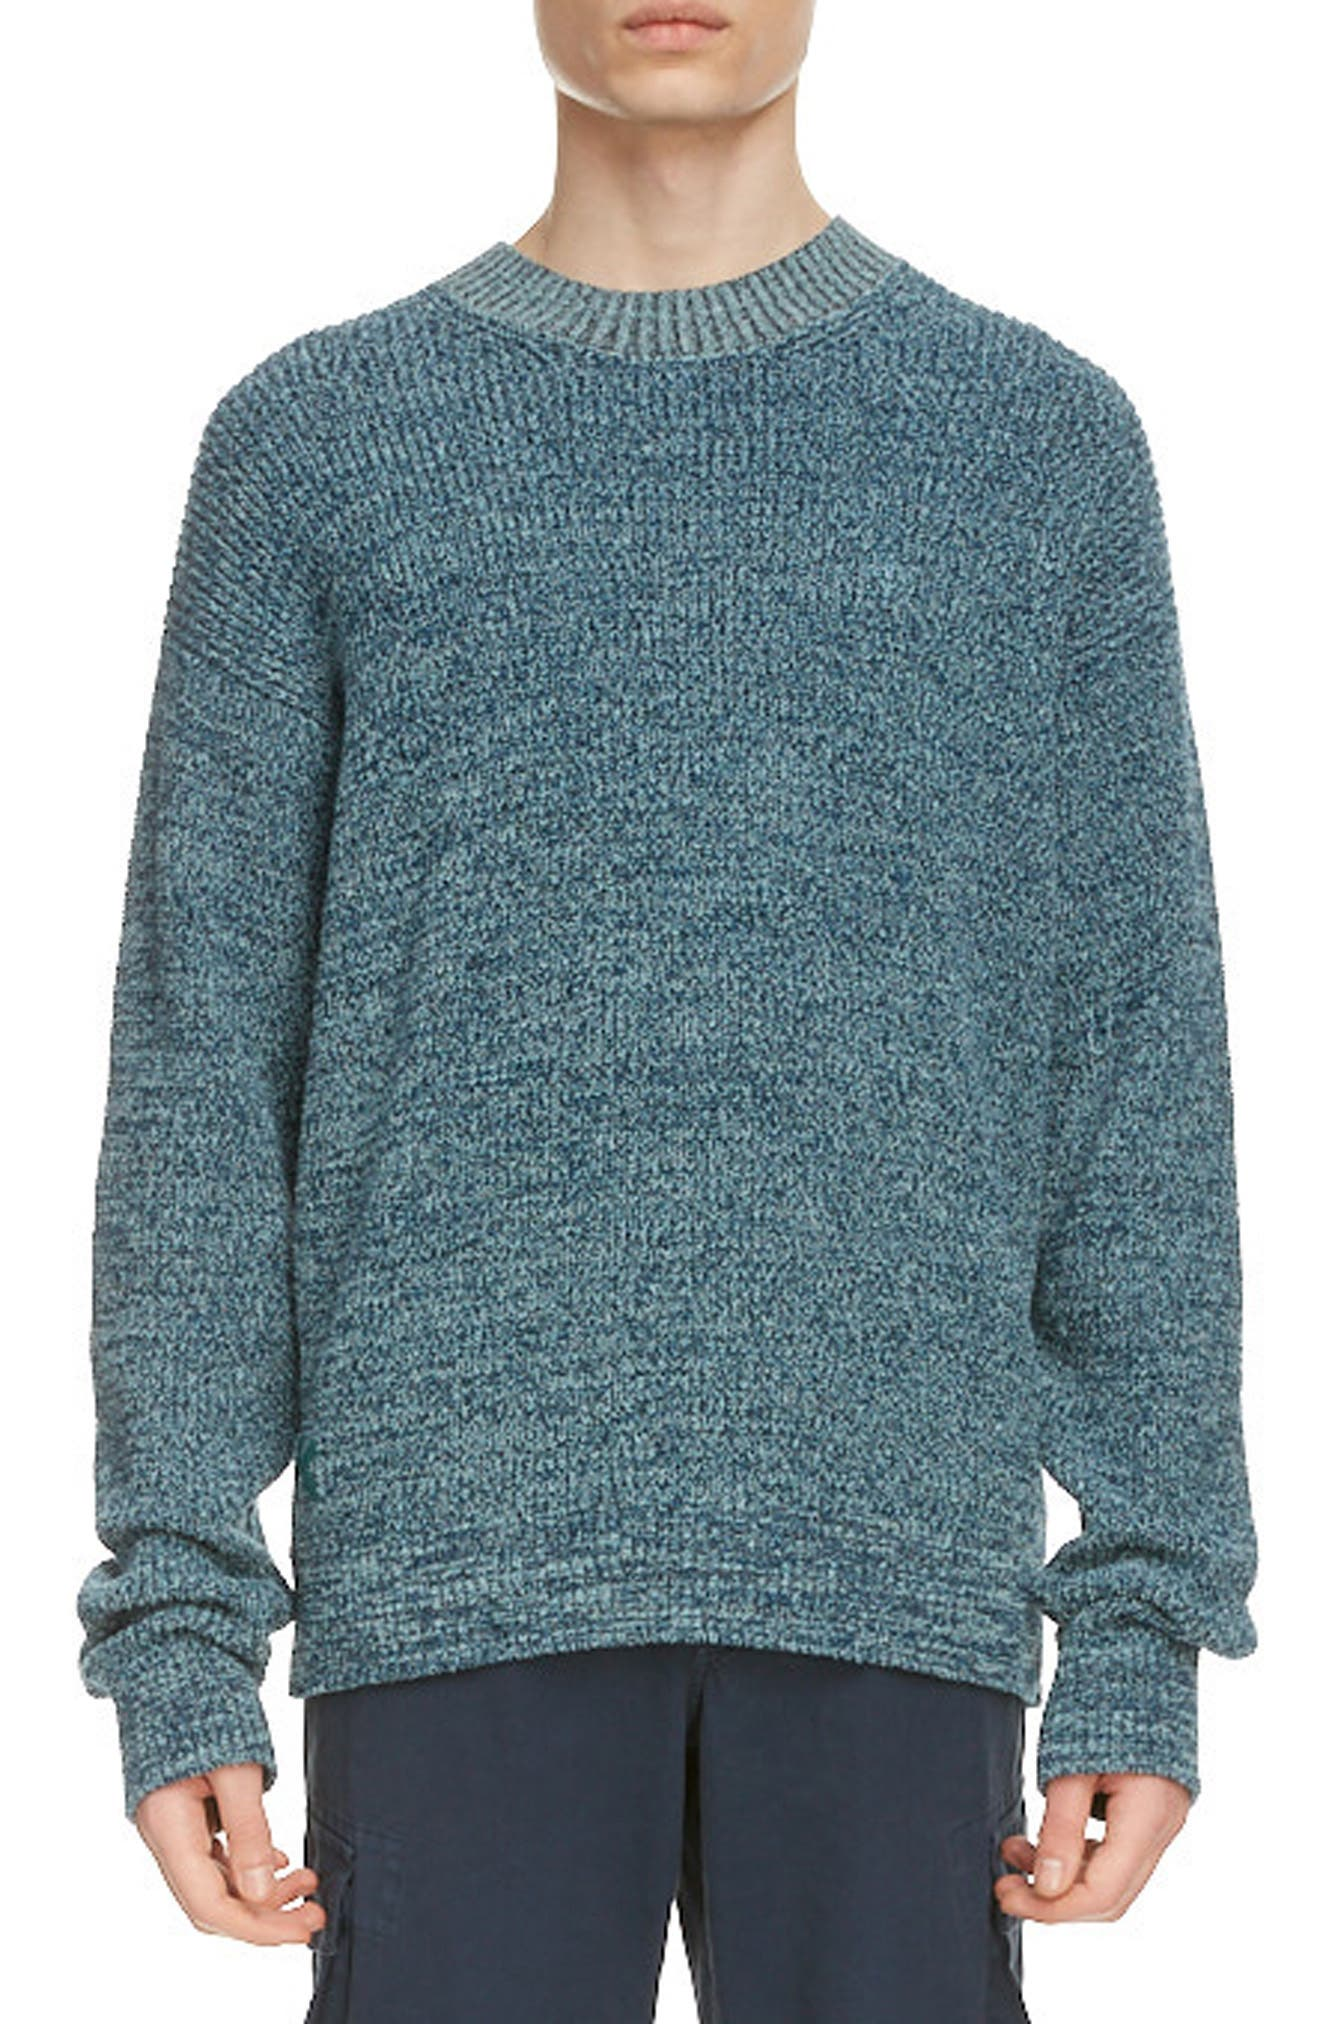 Dropped shoulders and puddled sleeves exaggerate the relaxed, slouchy profile of a sweater knit for comfort from a chunky cotton blend. Style Name: Kenzo Oversize Crewneck Sweater. Style Number: 6065795. Available in stores.